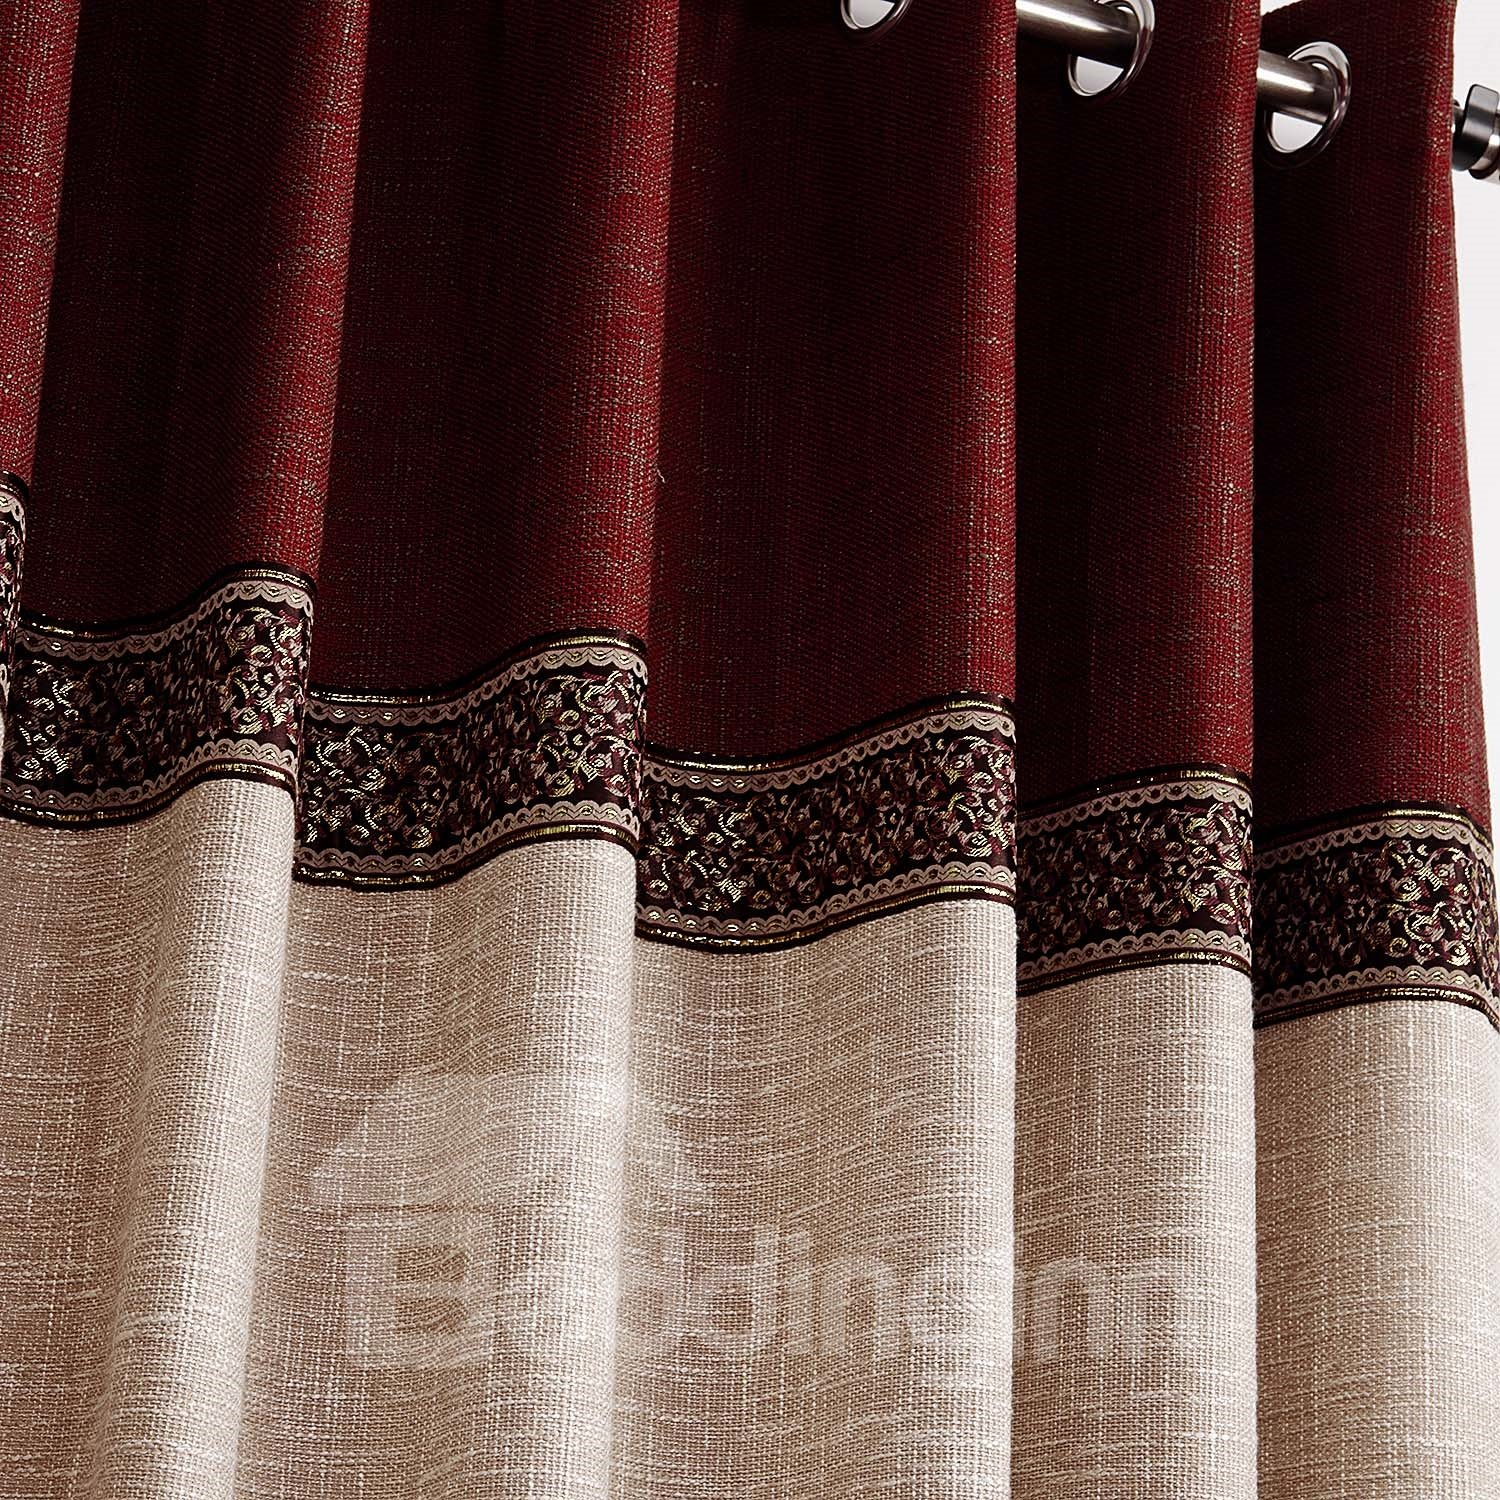 Hot Selling Fantastic Joint Color Decorative Border Design Custom Curtain